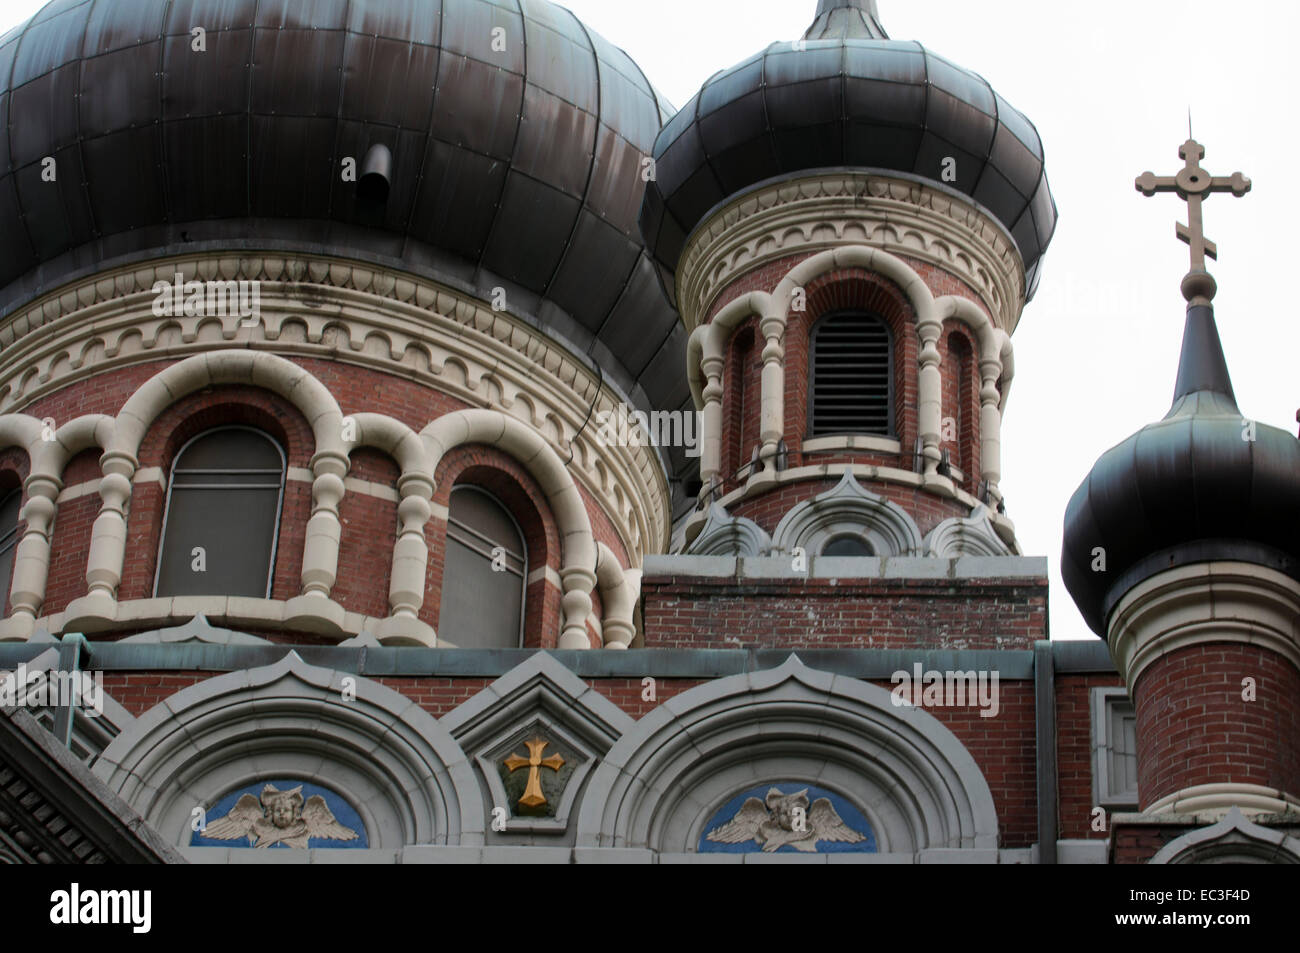 St. Nicholas Russian Orthodox Cathedral. 15 East 97th Street. Telephone 212-876-2190. This church was built in 1902 - Stock Image